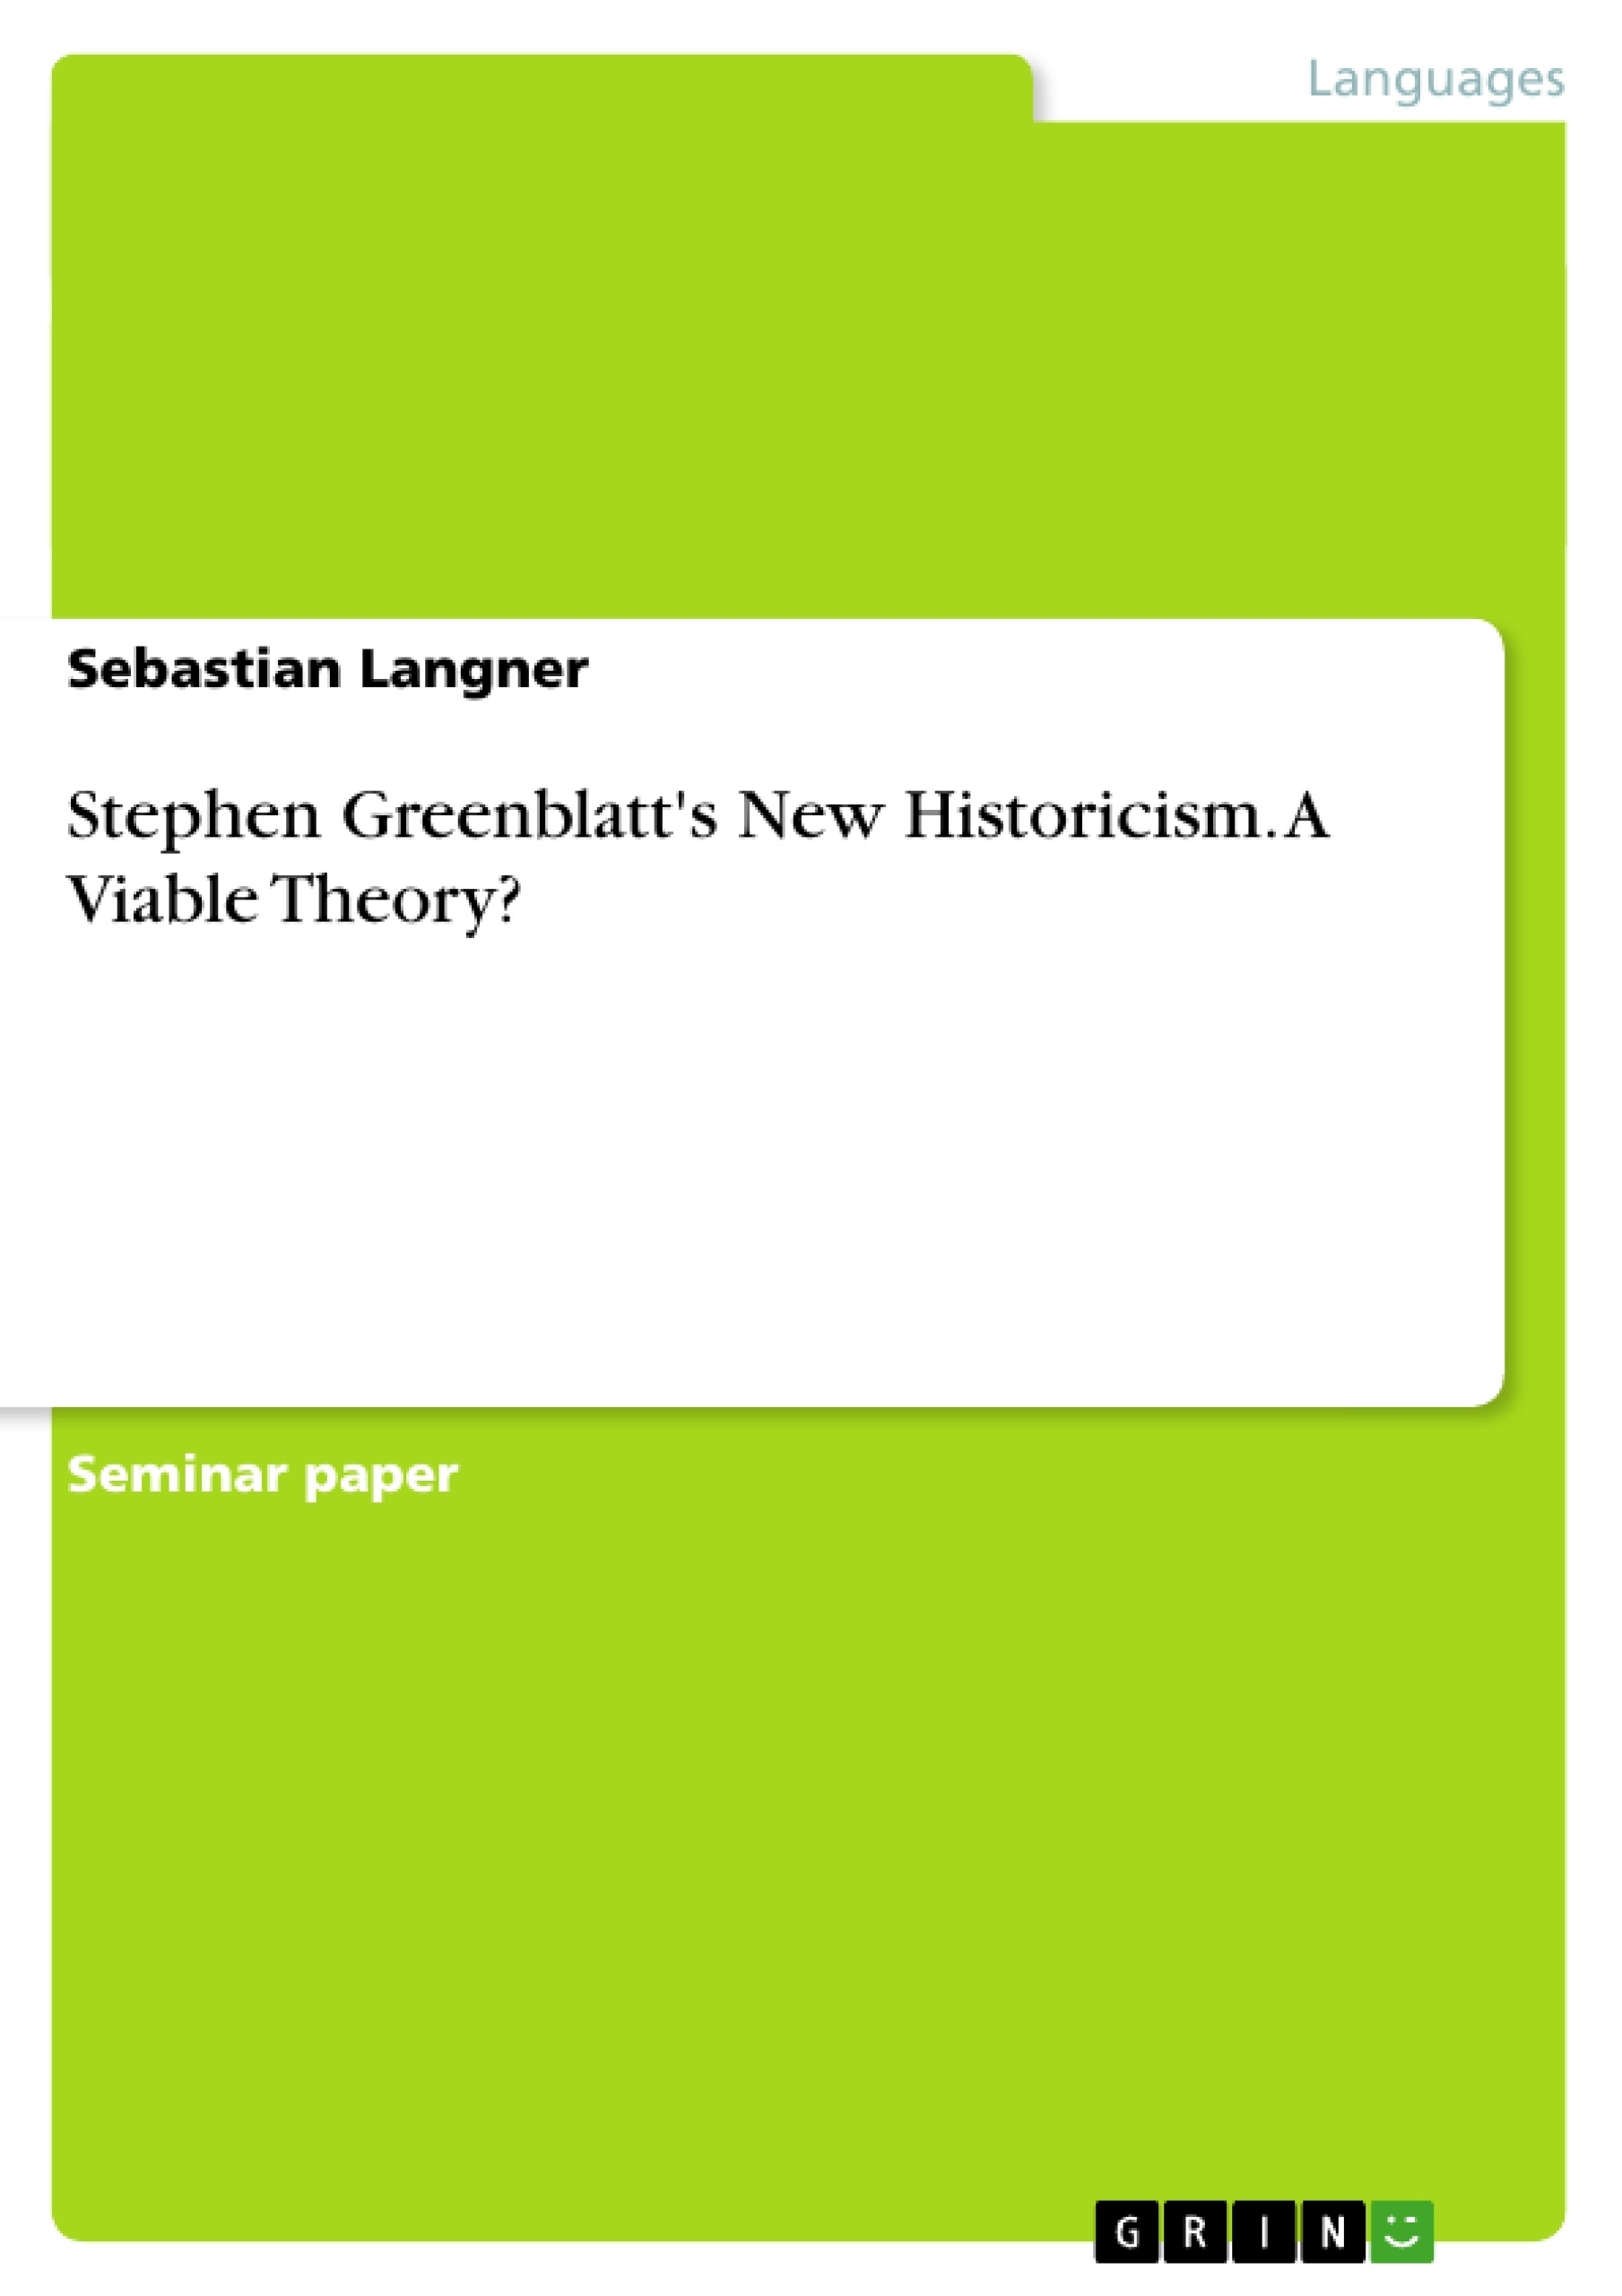 Title: Stephen Greenblatt's New Historicism. A Viable Theory?